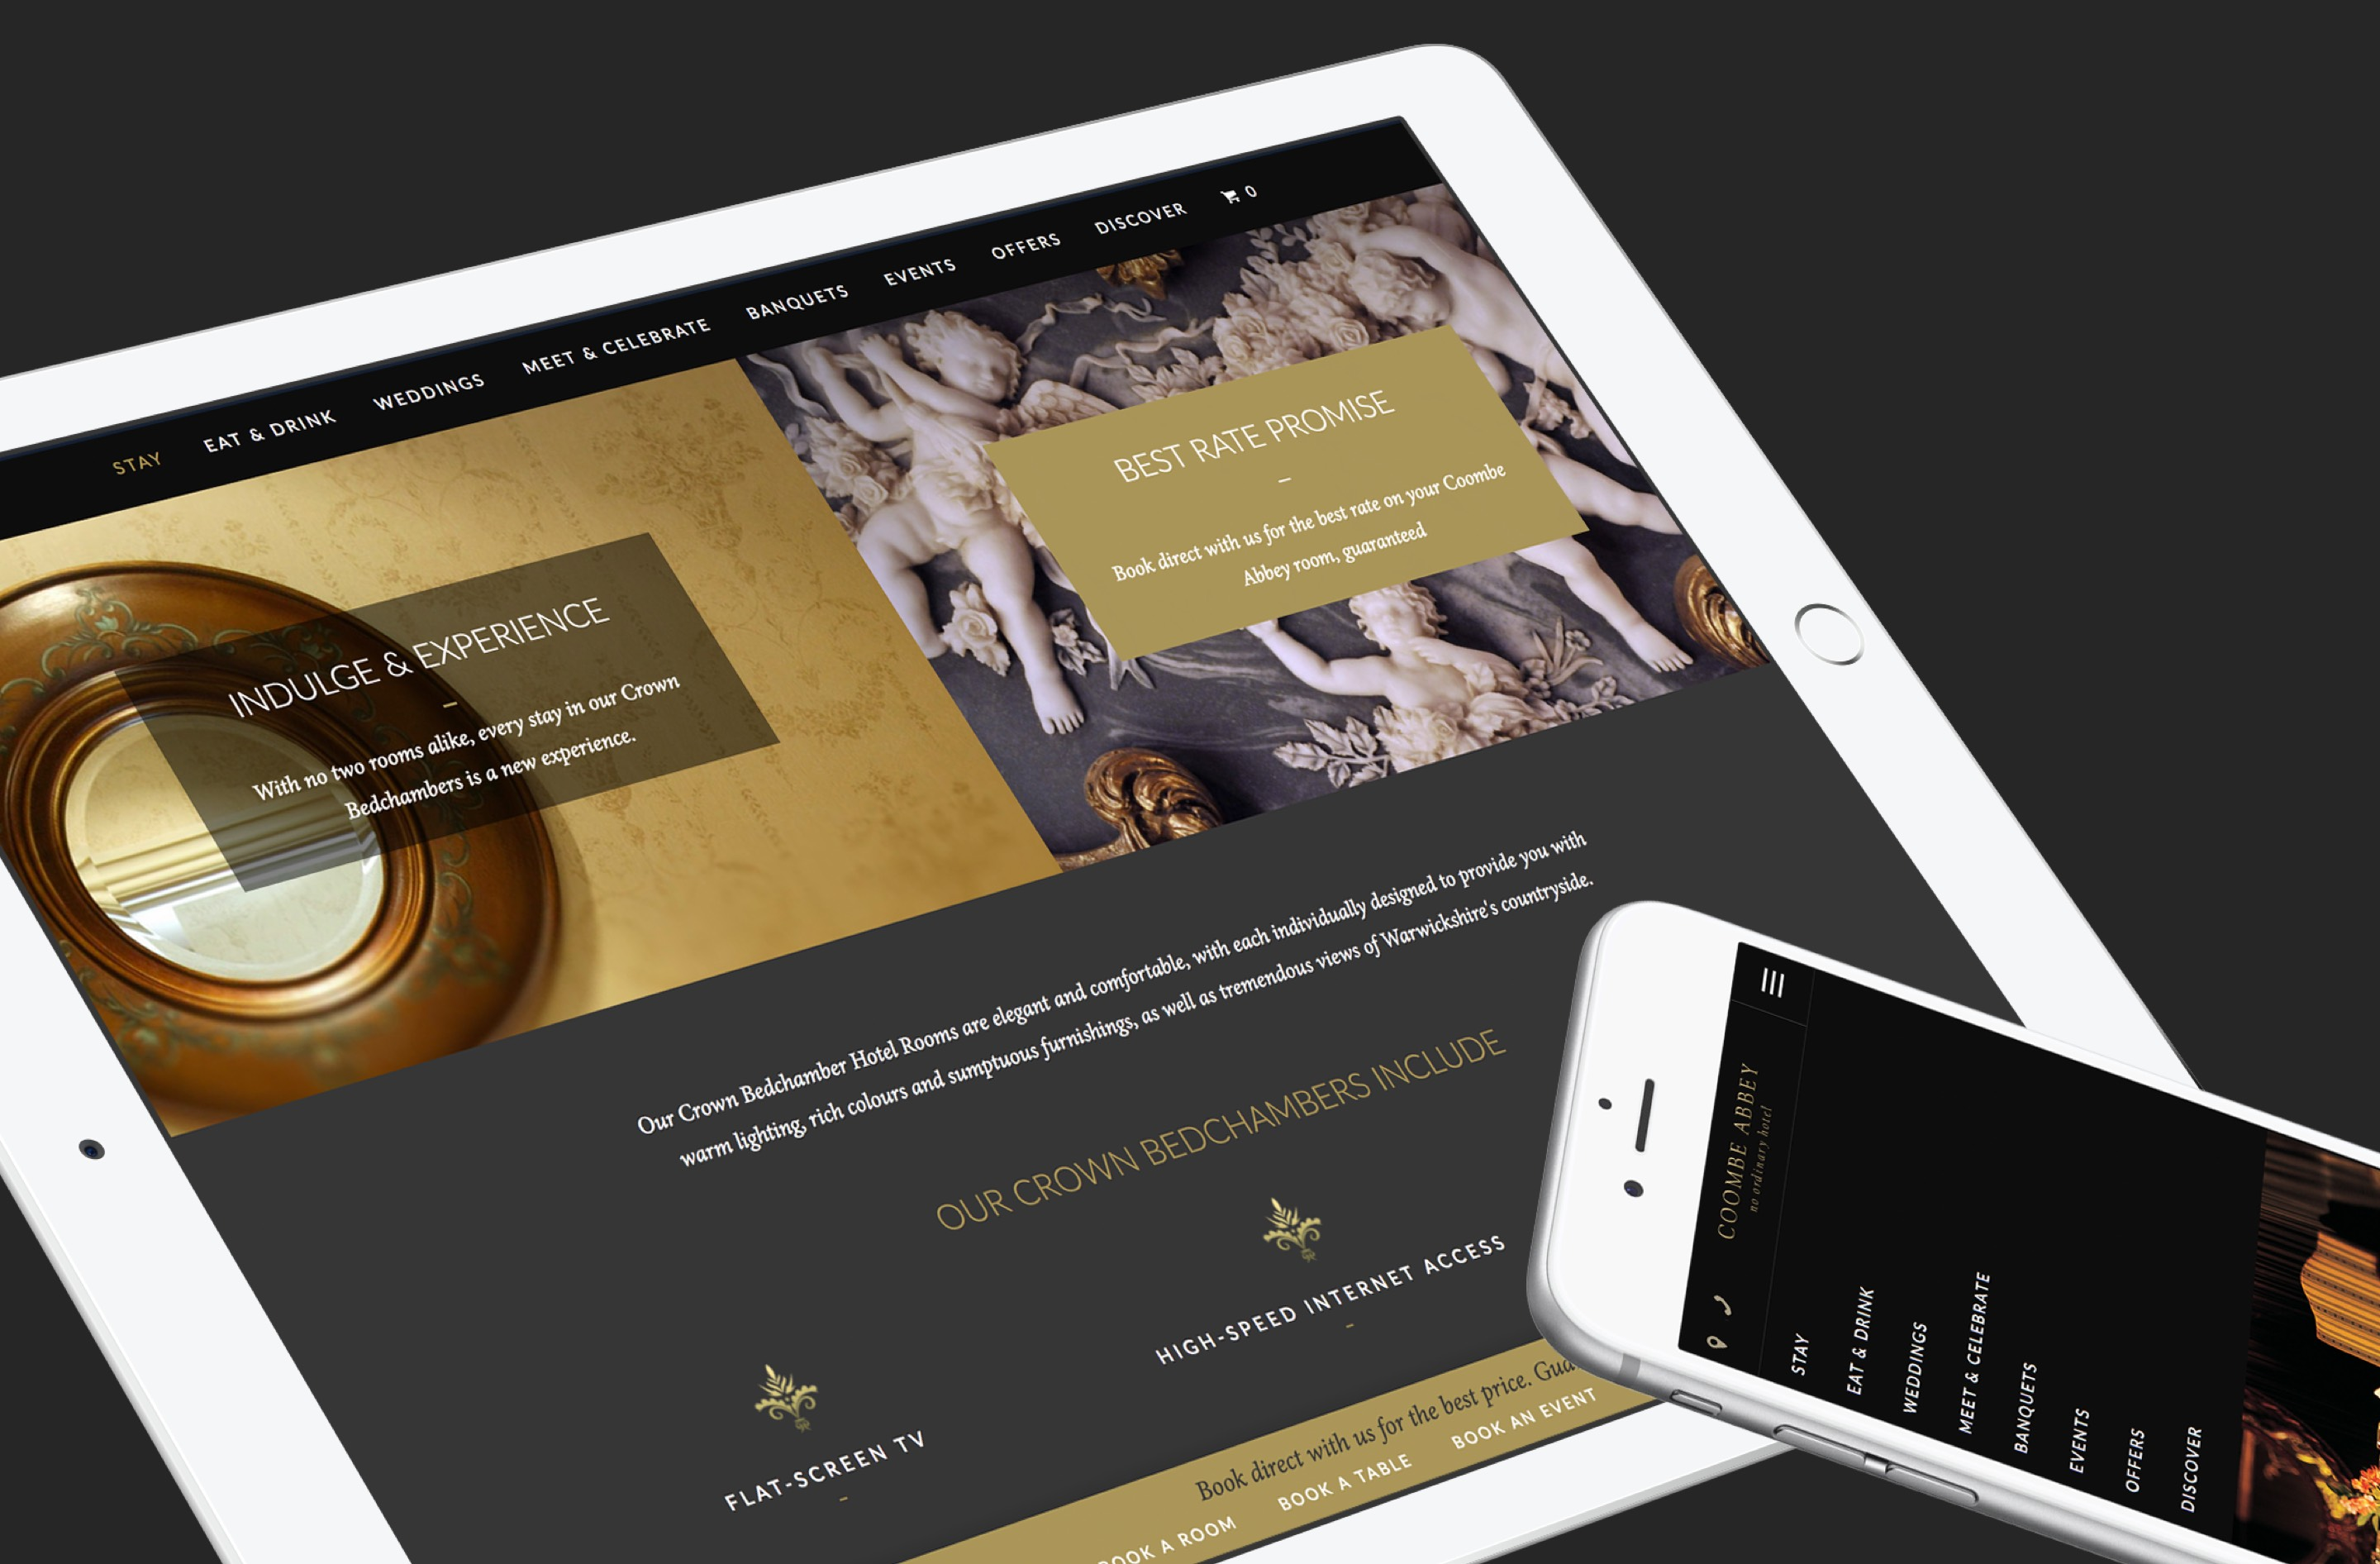 Clever content marketing helped increase coombe abbey conversions